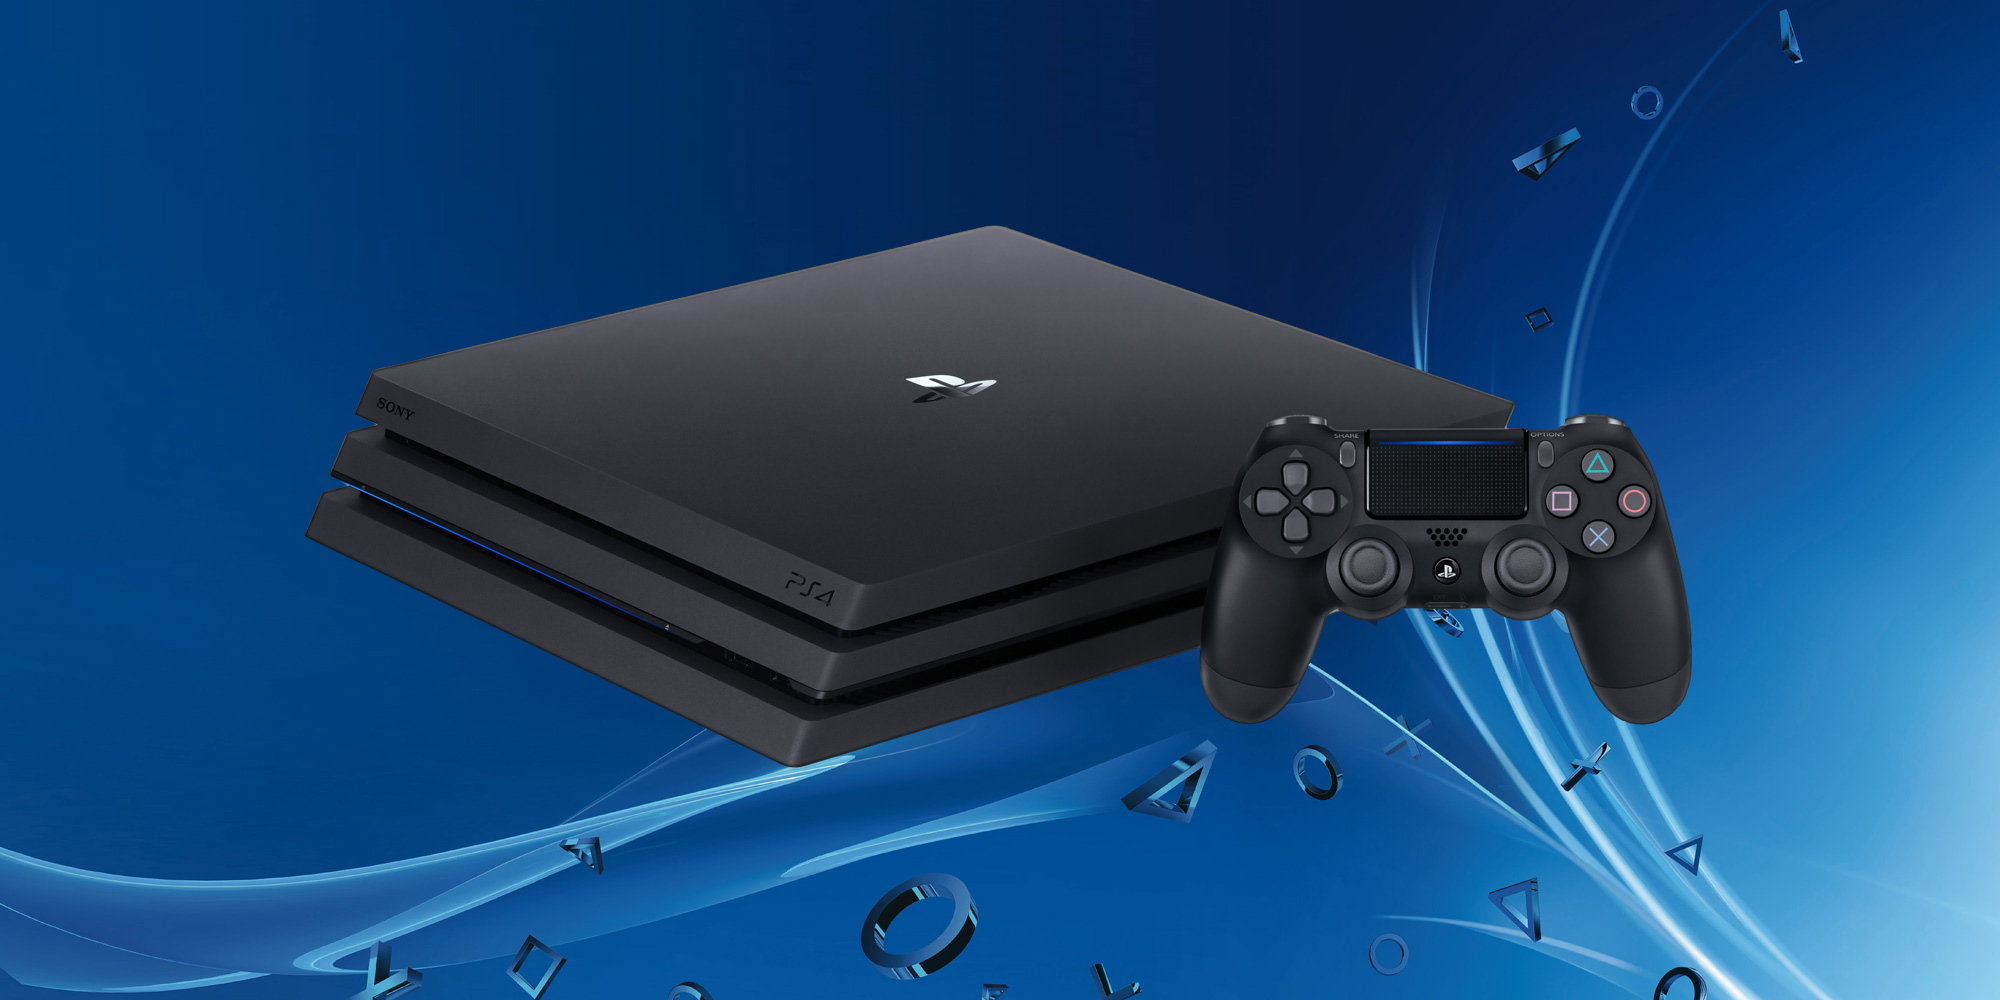 This is the PS4 PRO